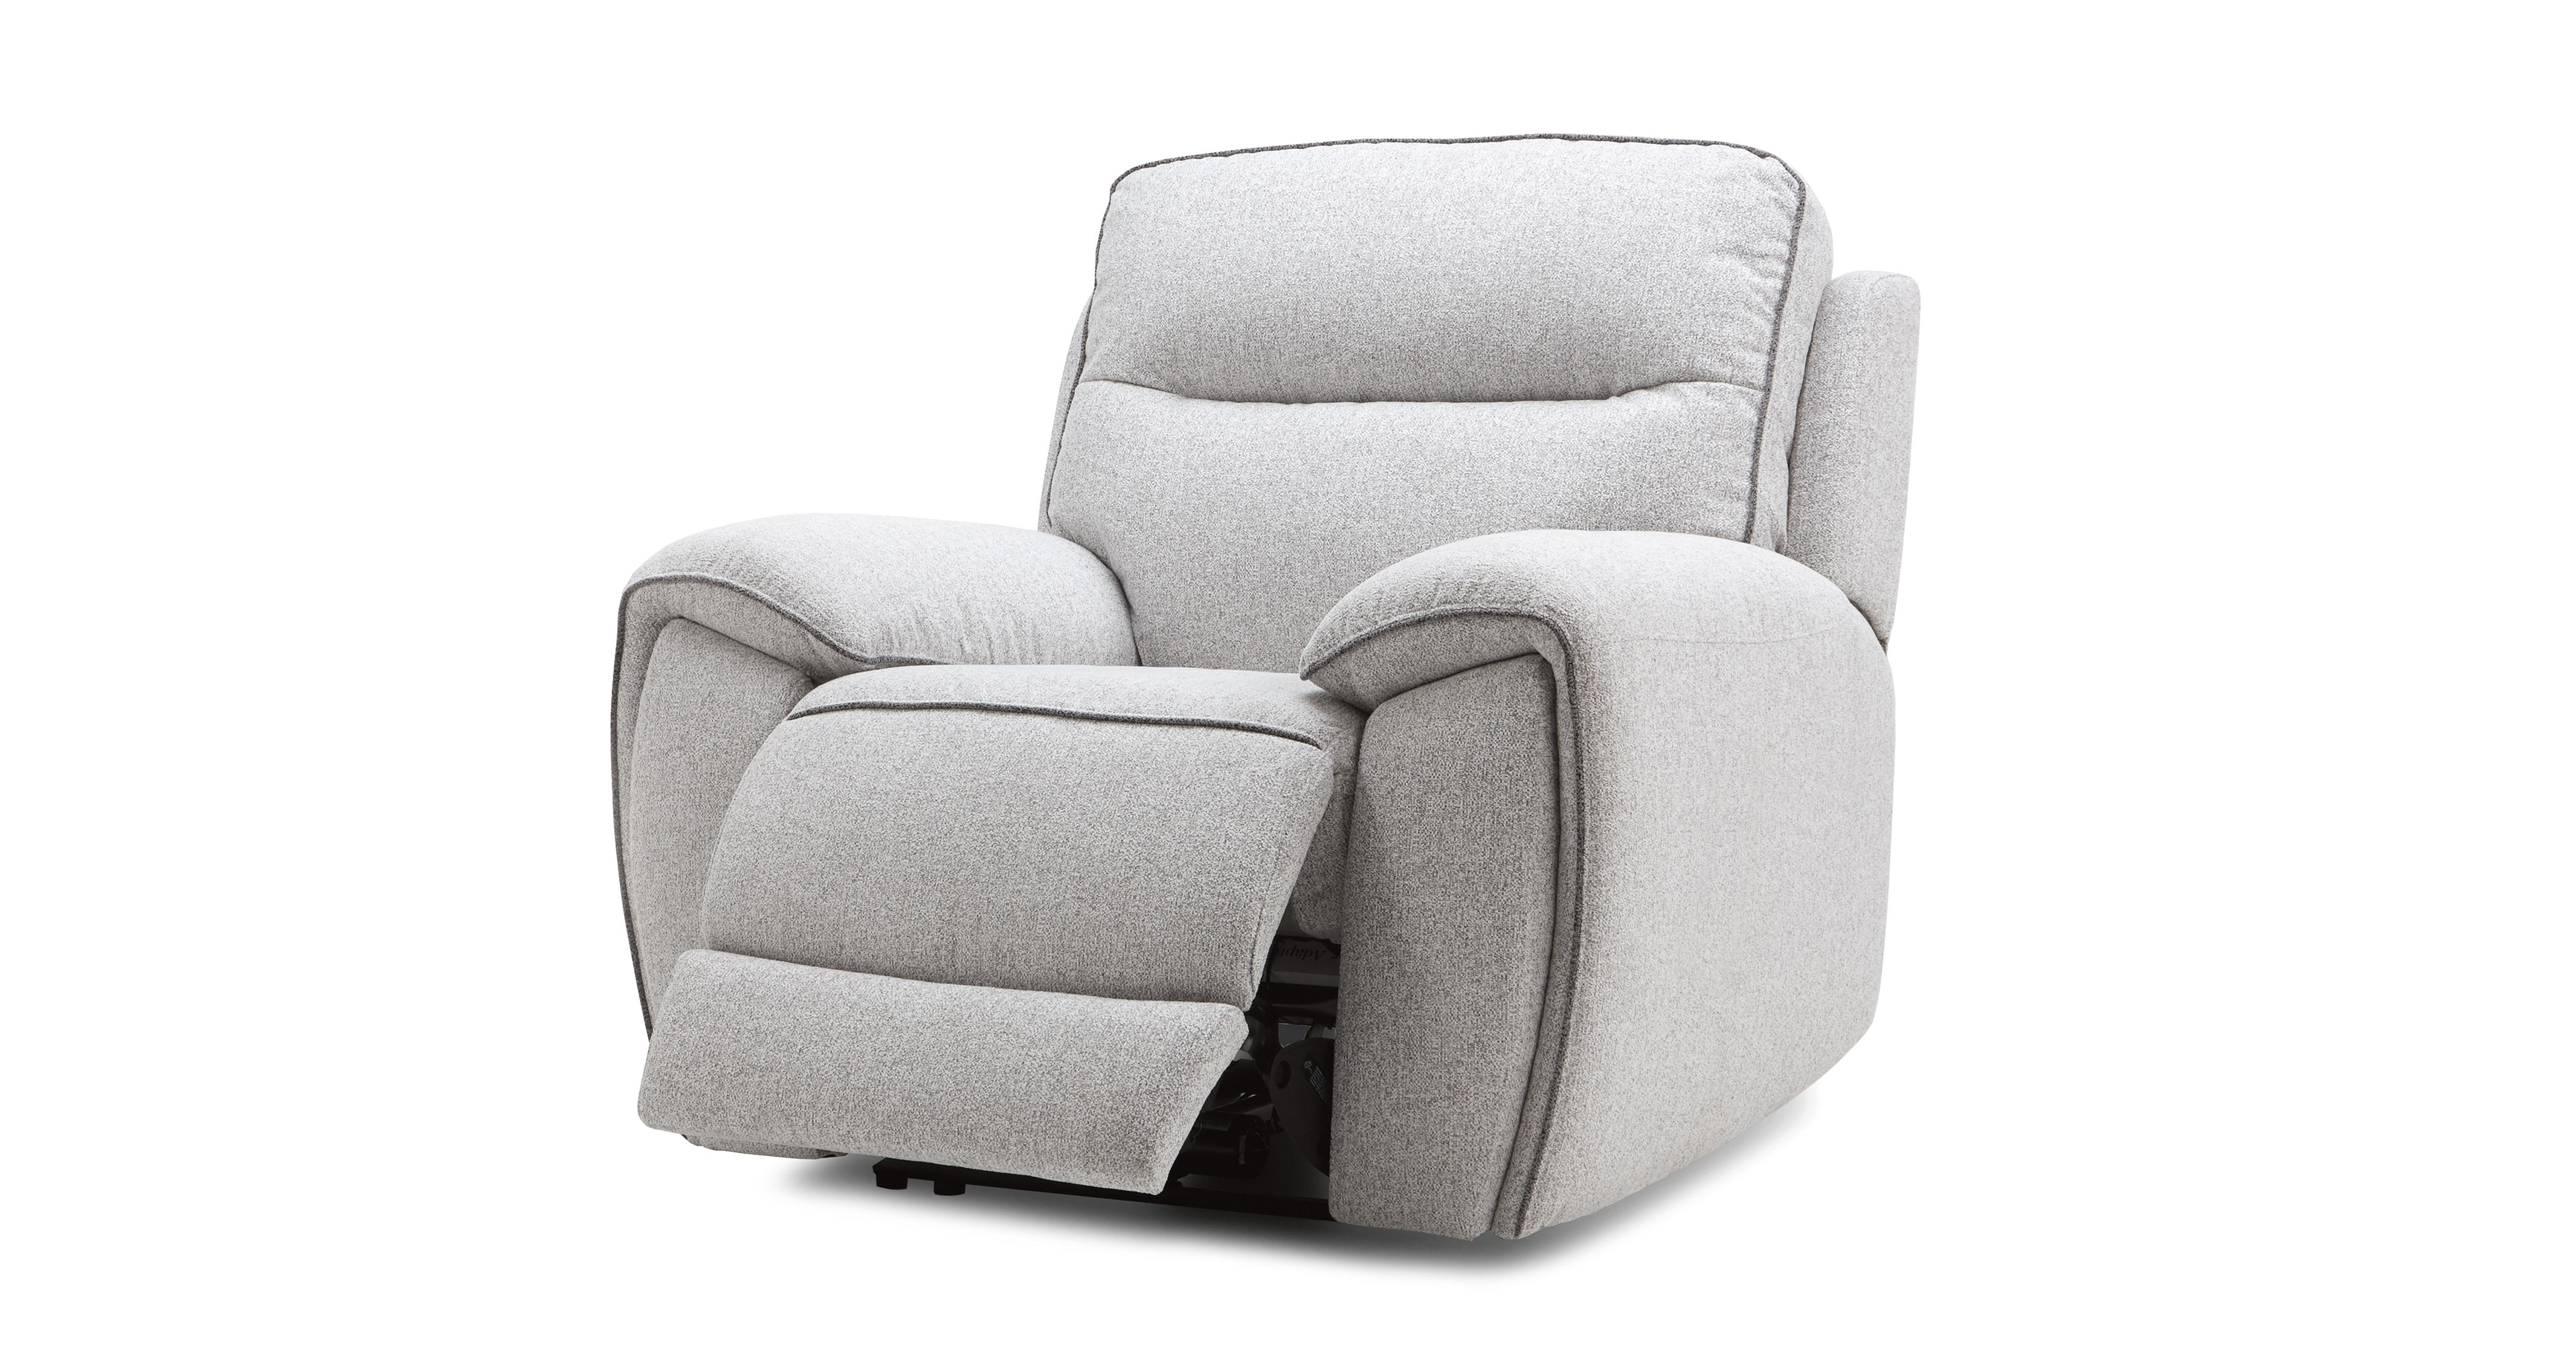 recliner chairs uk drafting office chair in a range of styles for your home dfs great savings empire power superb